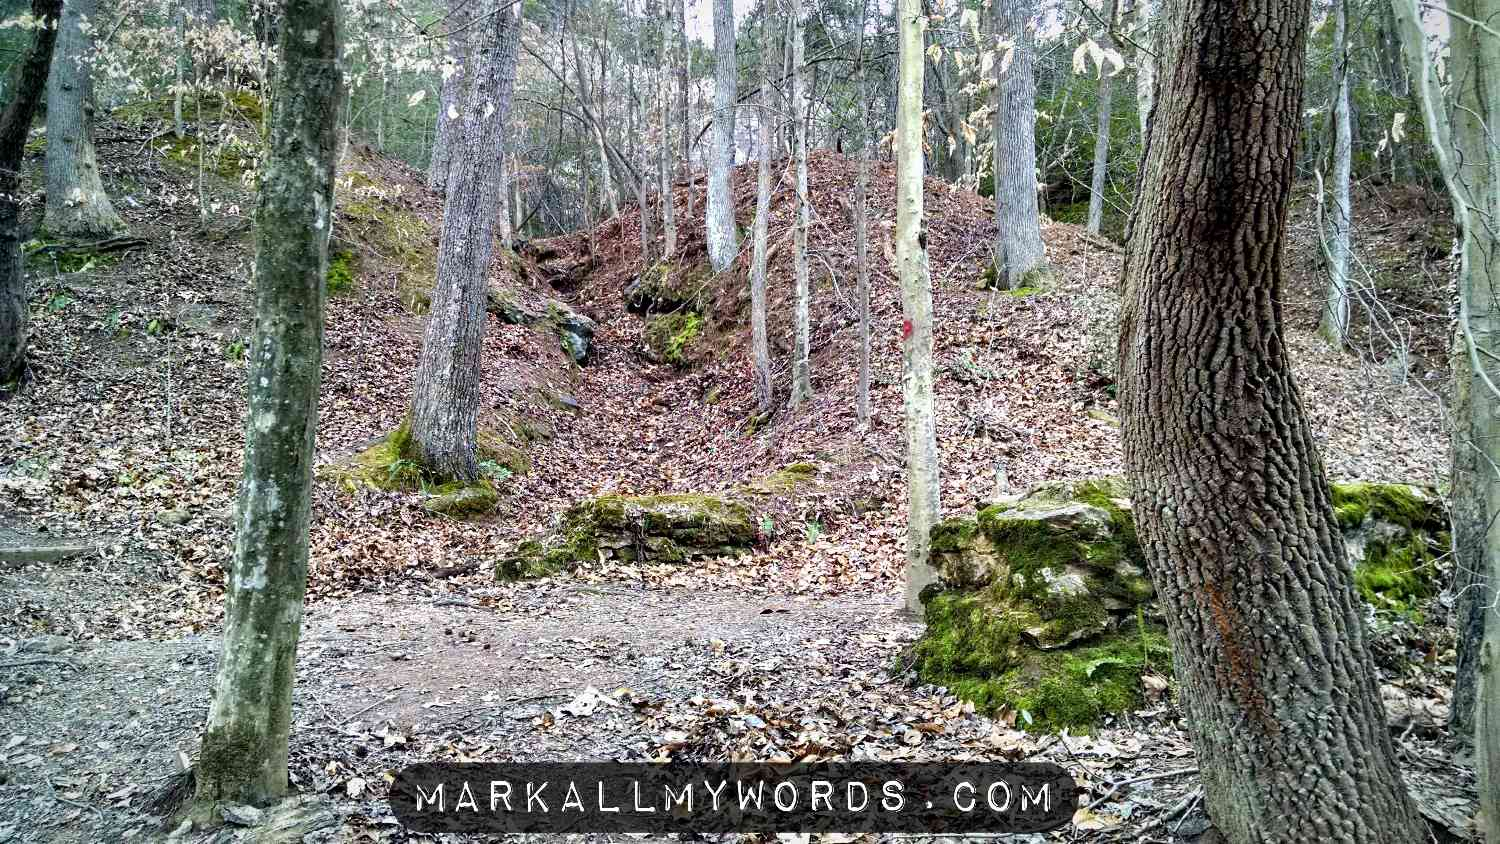 Occoneechee Mountain Trail passing through ruins of an old mill